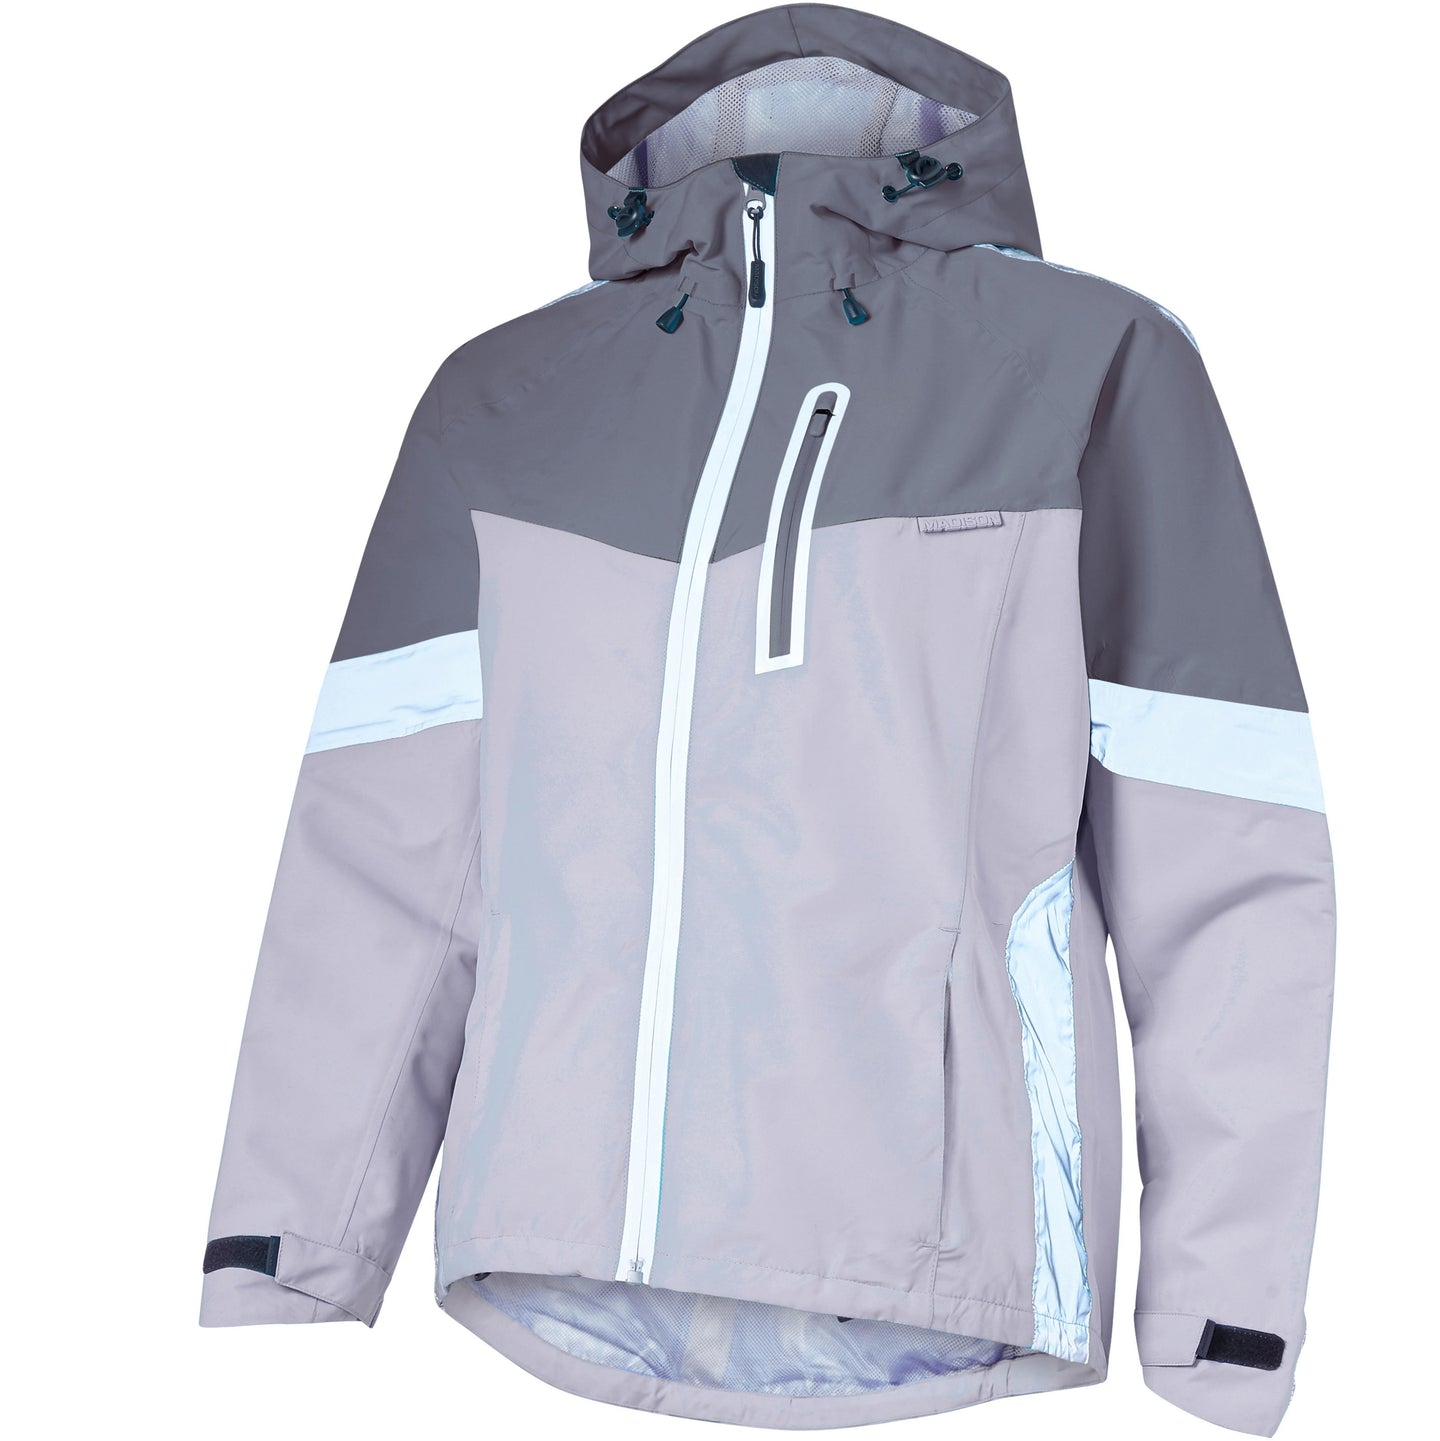 Madison Prima women's waterproof jacket, cloud grey / dark shadow | VeloVixen